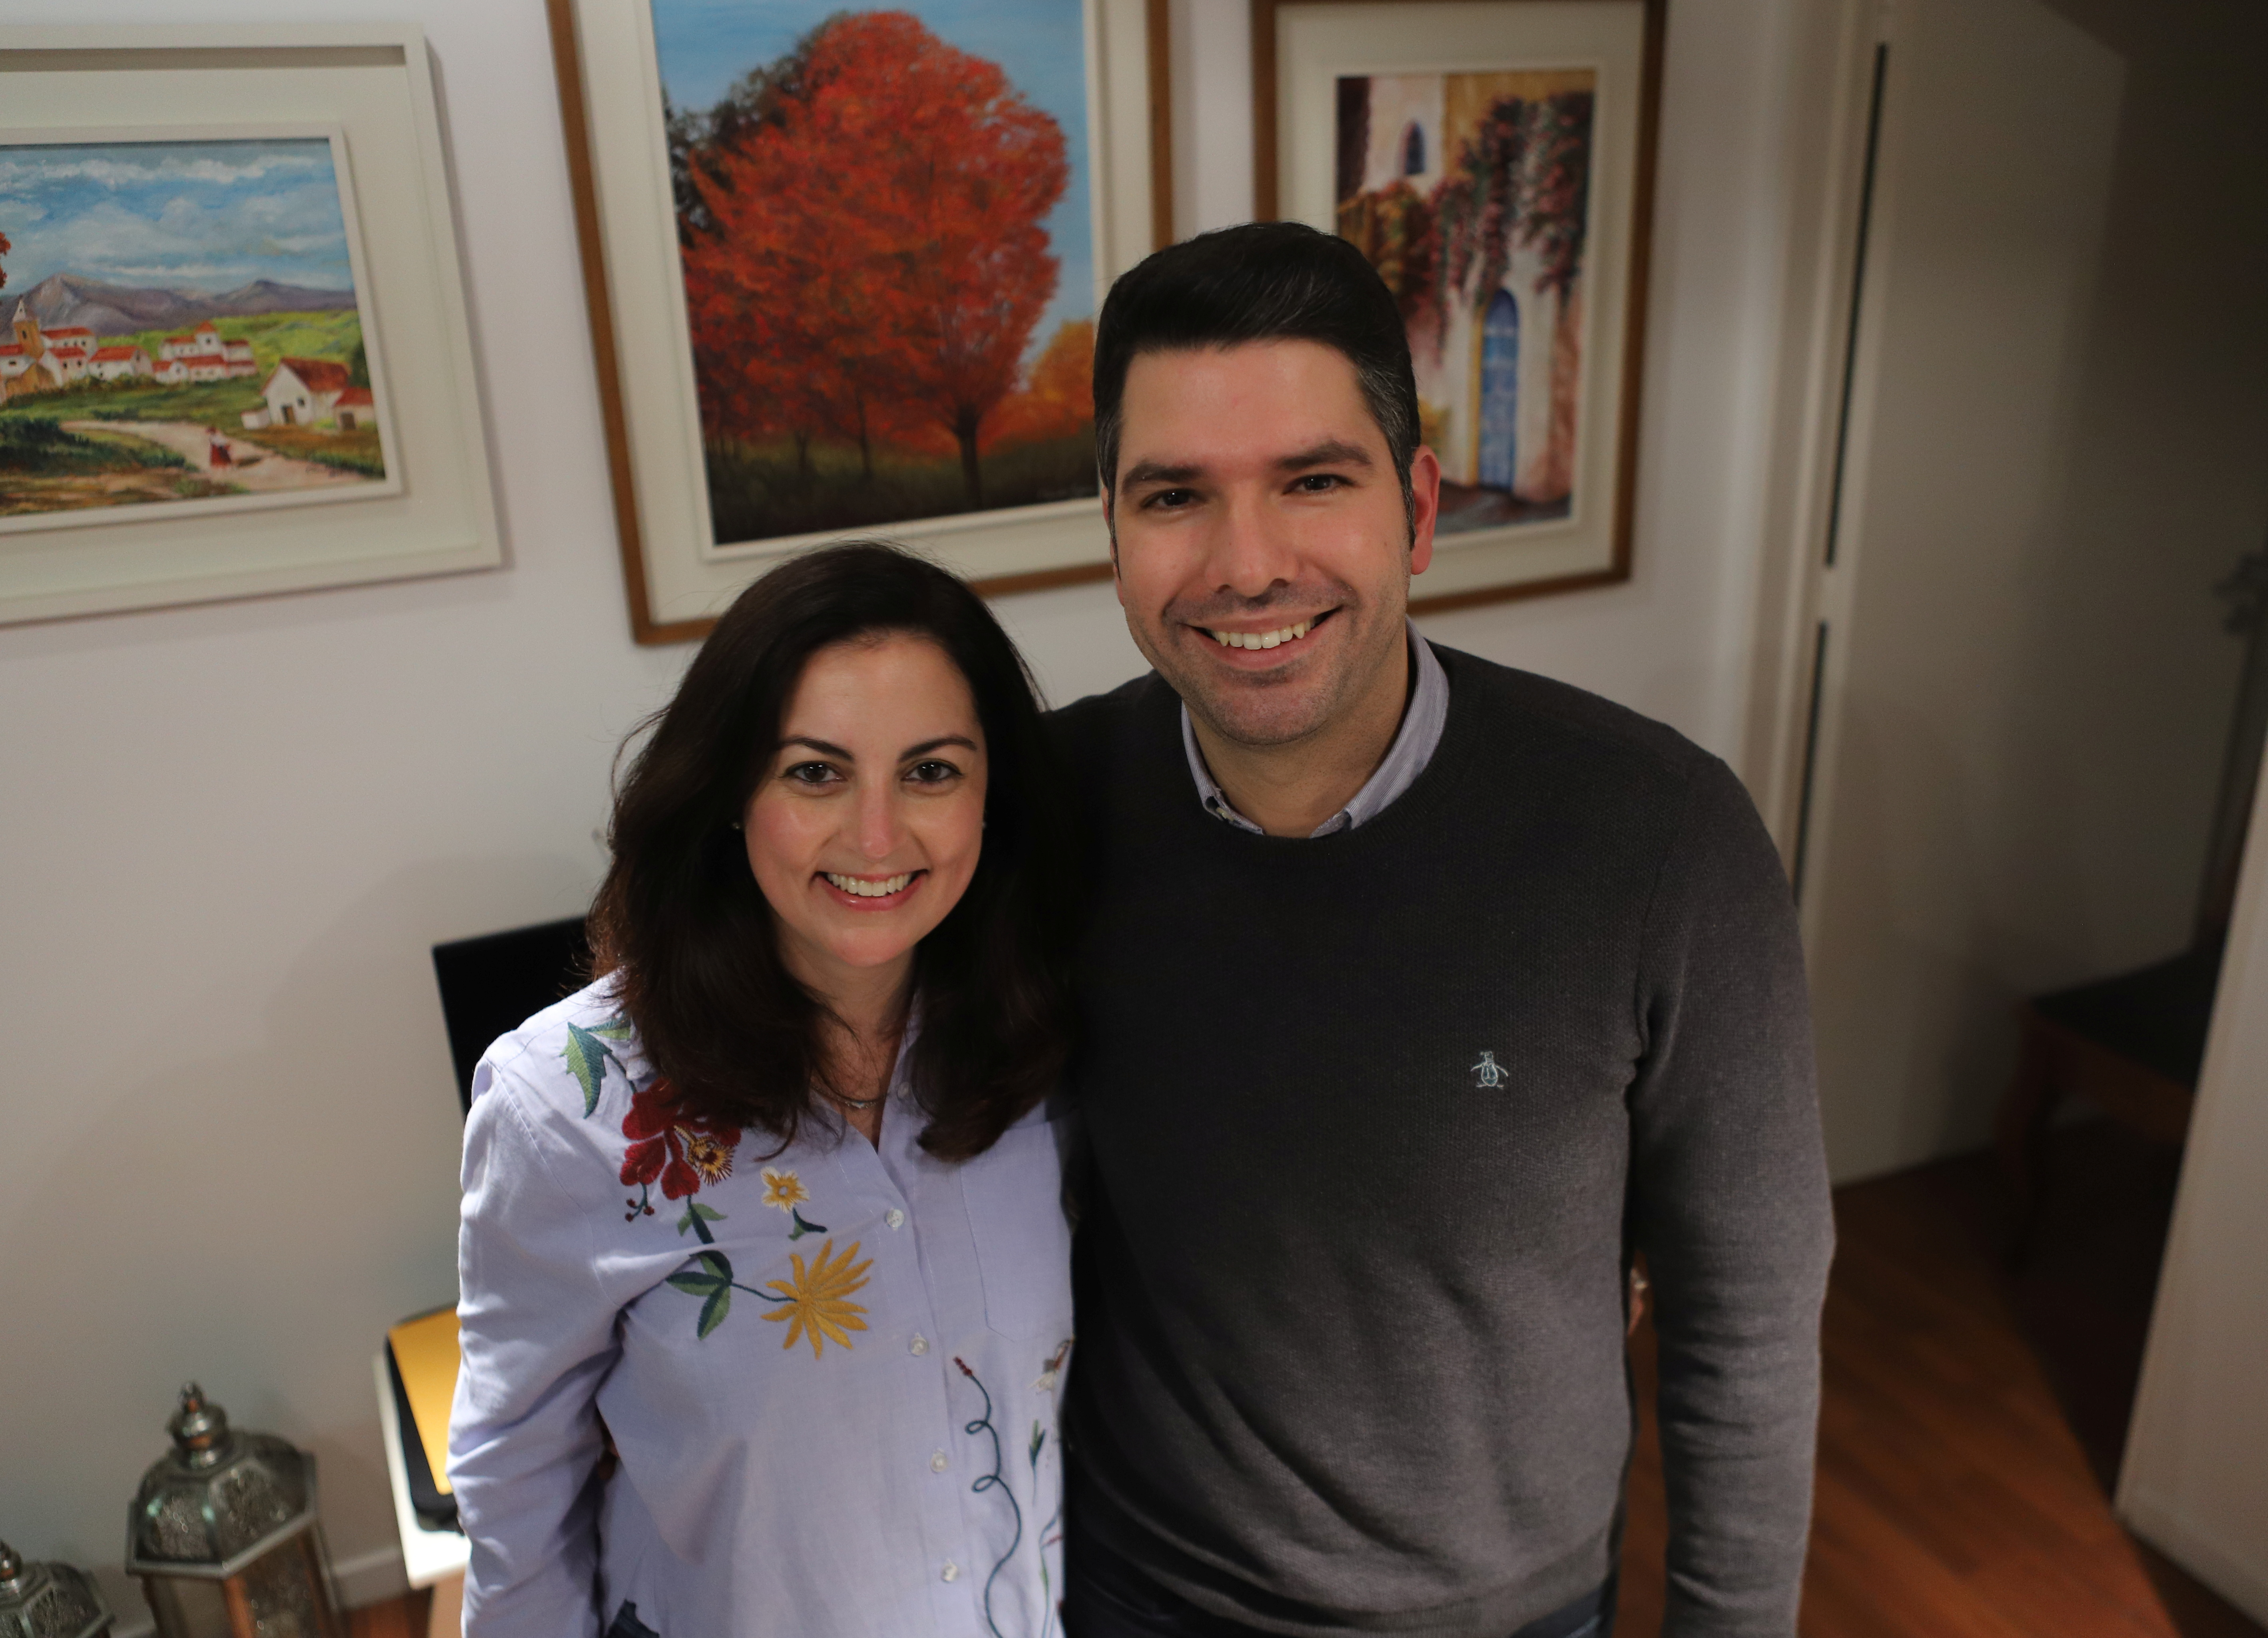 Claudia Becerra, 38, and Agustin Cacciola, 32, pose for a picture at their home, in Buenos Aires, Argentina July 15, 2021. Picture taken July 15, 2021. REUTERS/Matias Baglietto